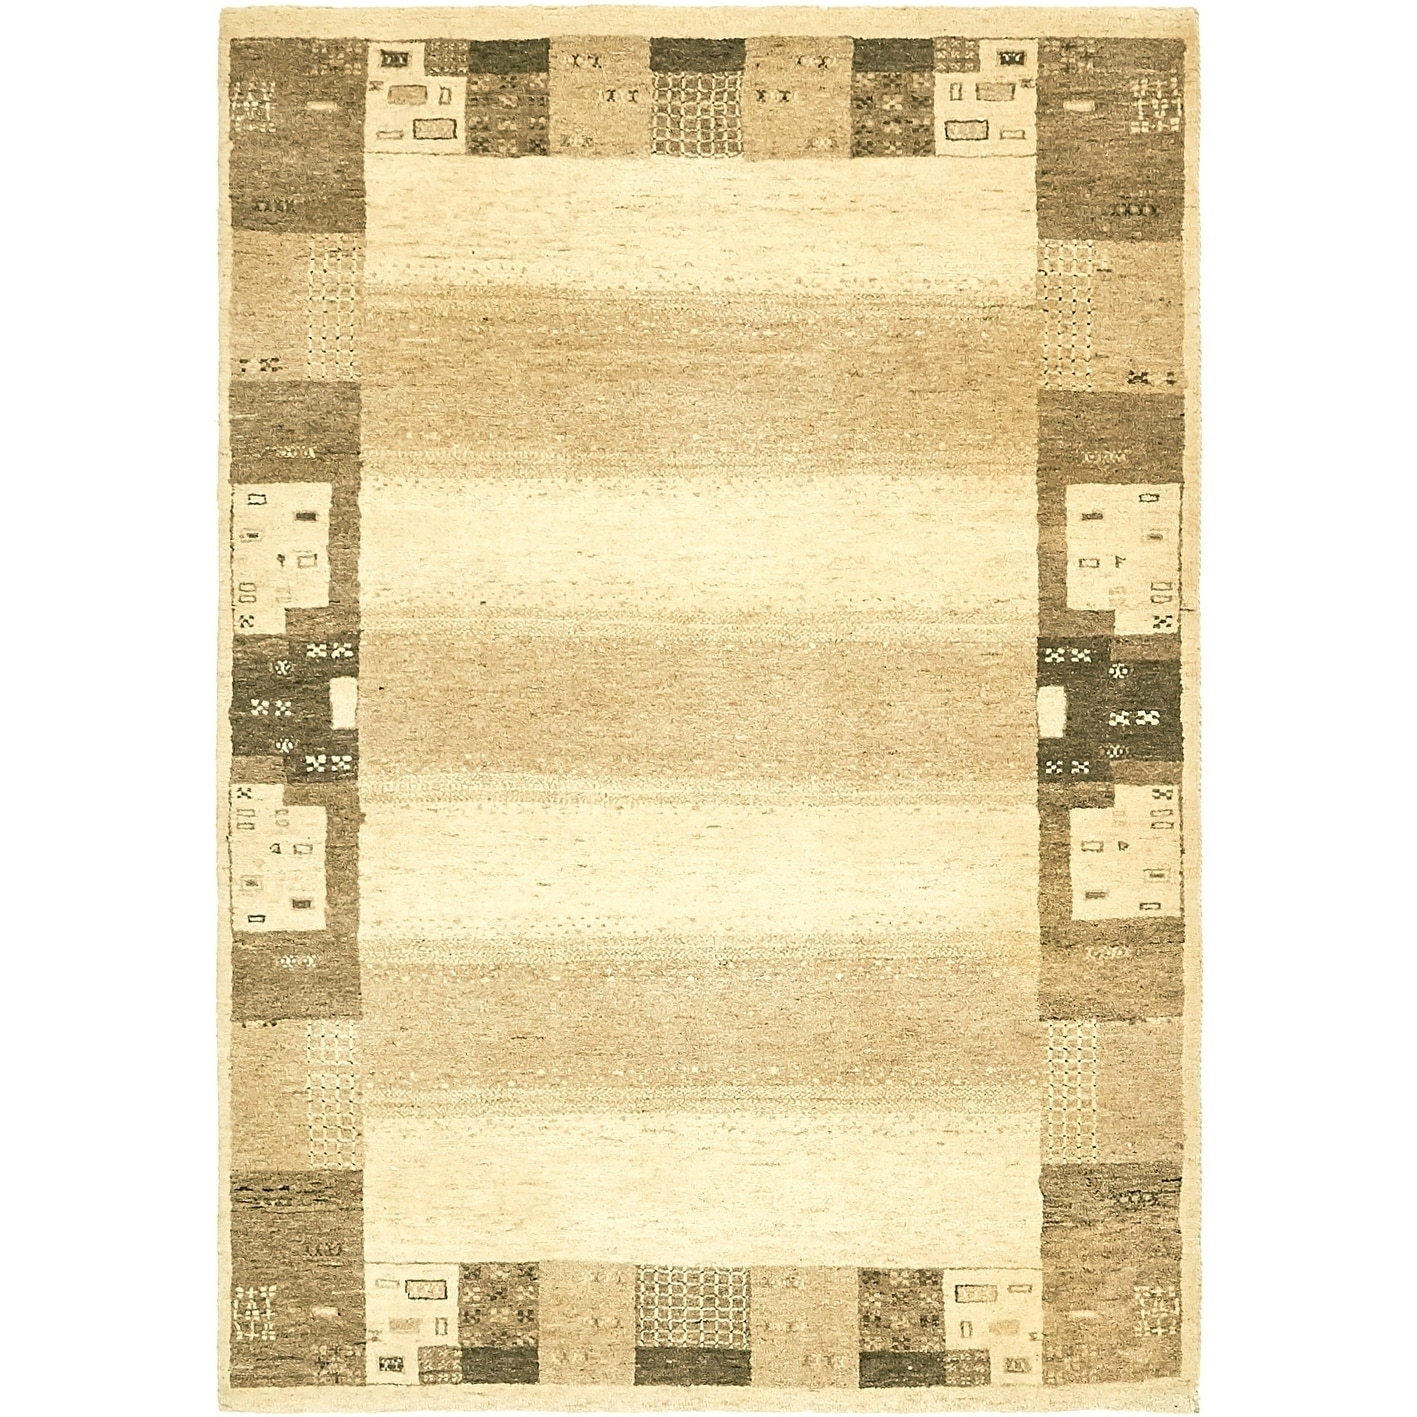 Hand Knotted Kashkuli Gabbeh Wool Area Rug - 4 x 5 8 (Cream - 4 x 5 8)